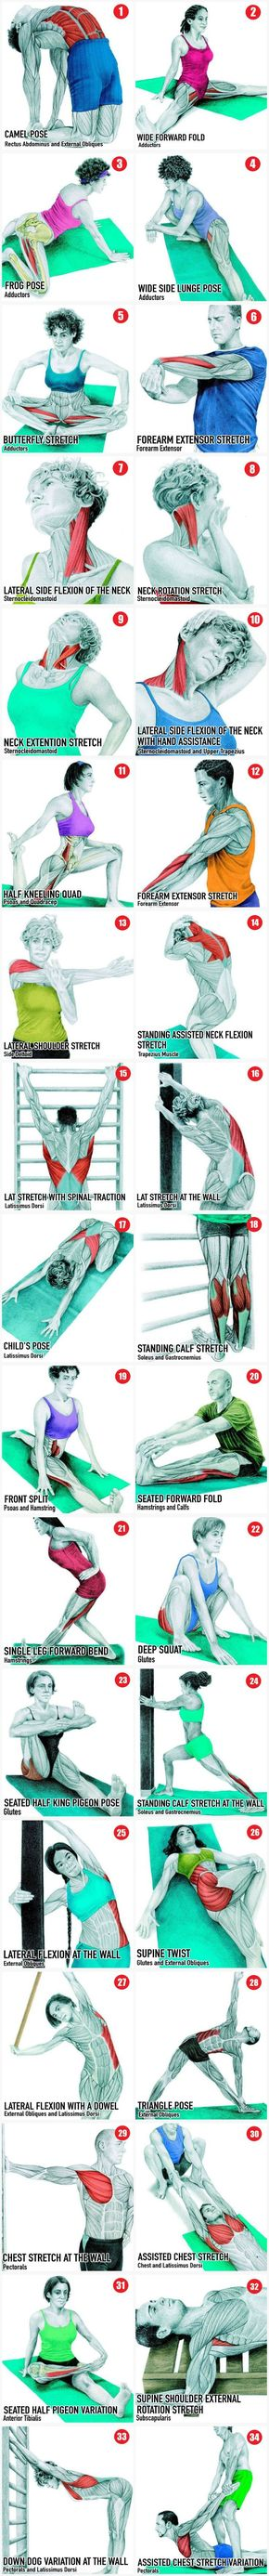 34 #Yoga Stretches And Main Muscles Involved #Diet